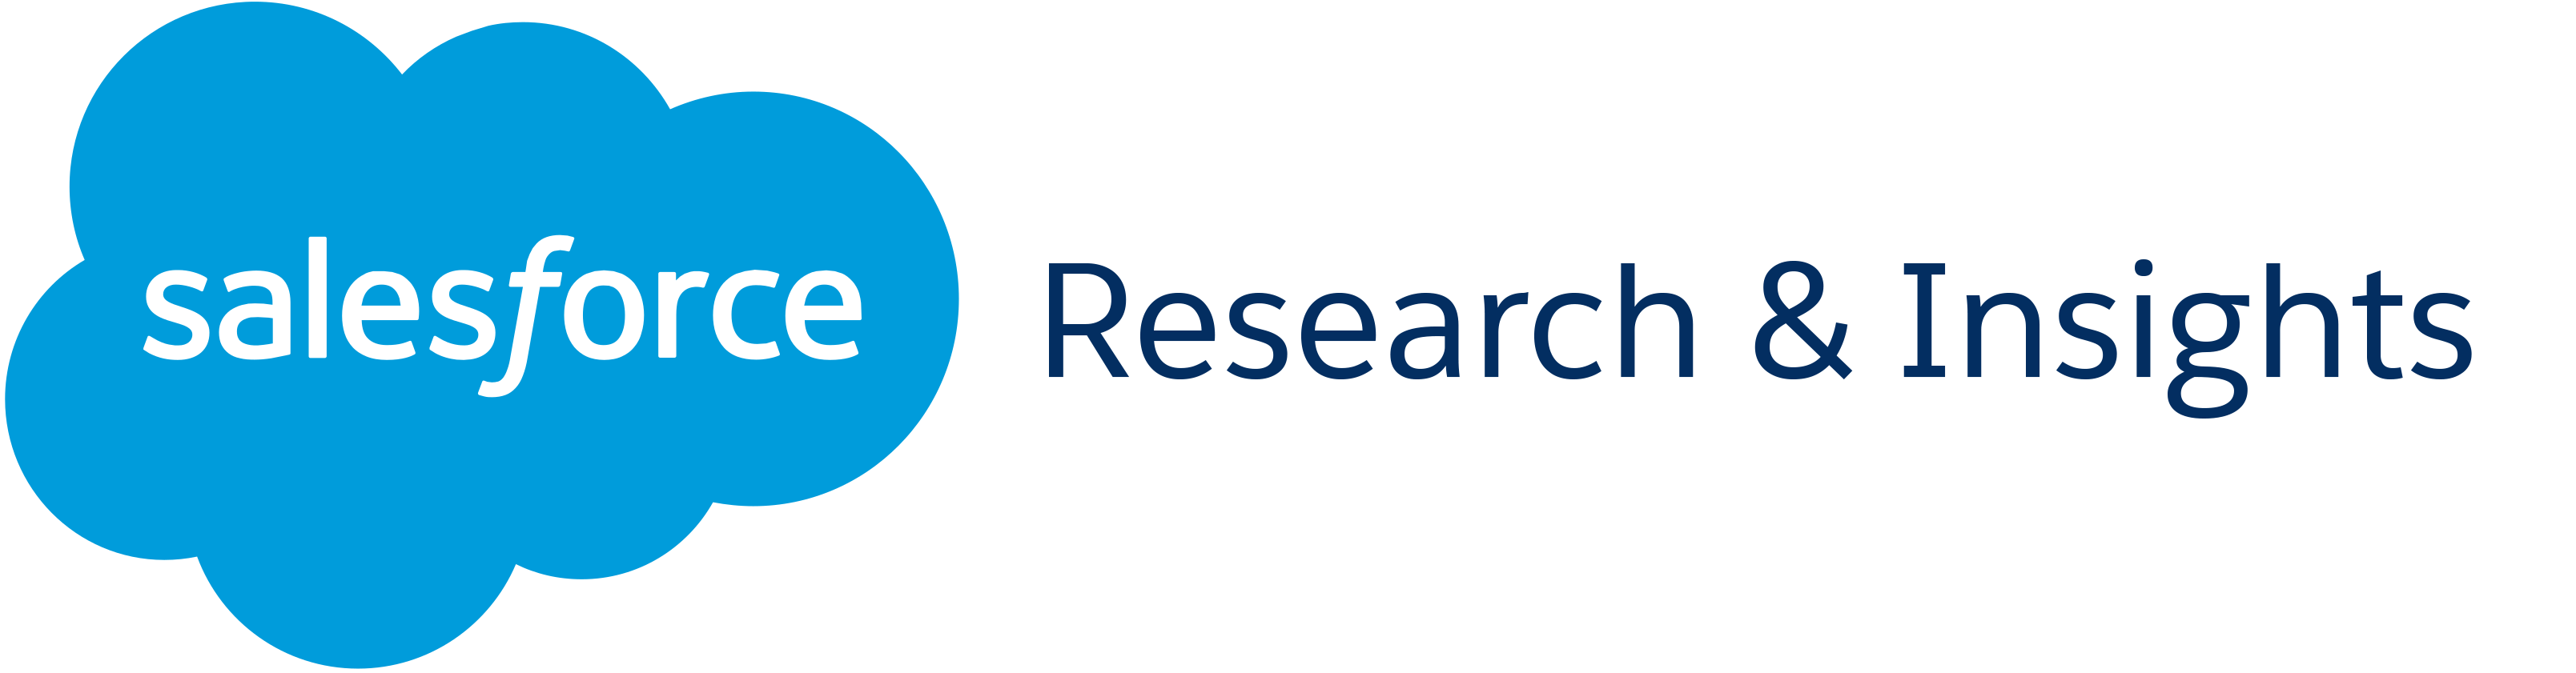 Salesforce Research & Insights